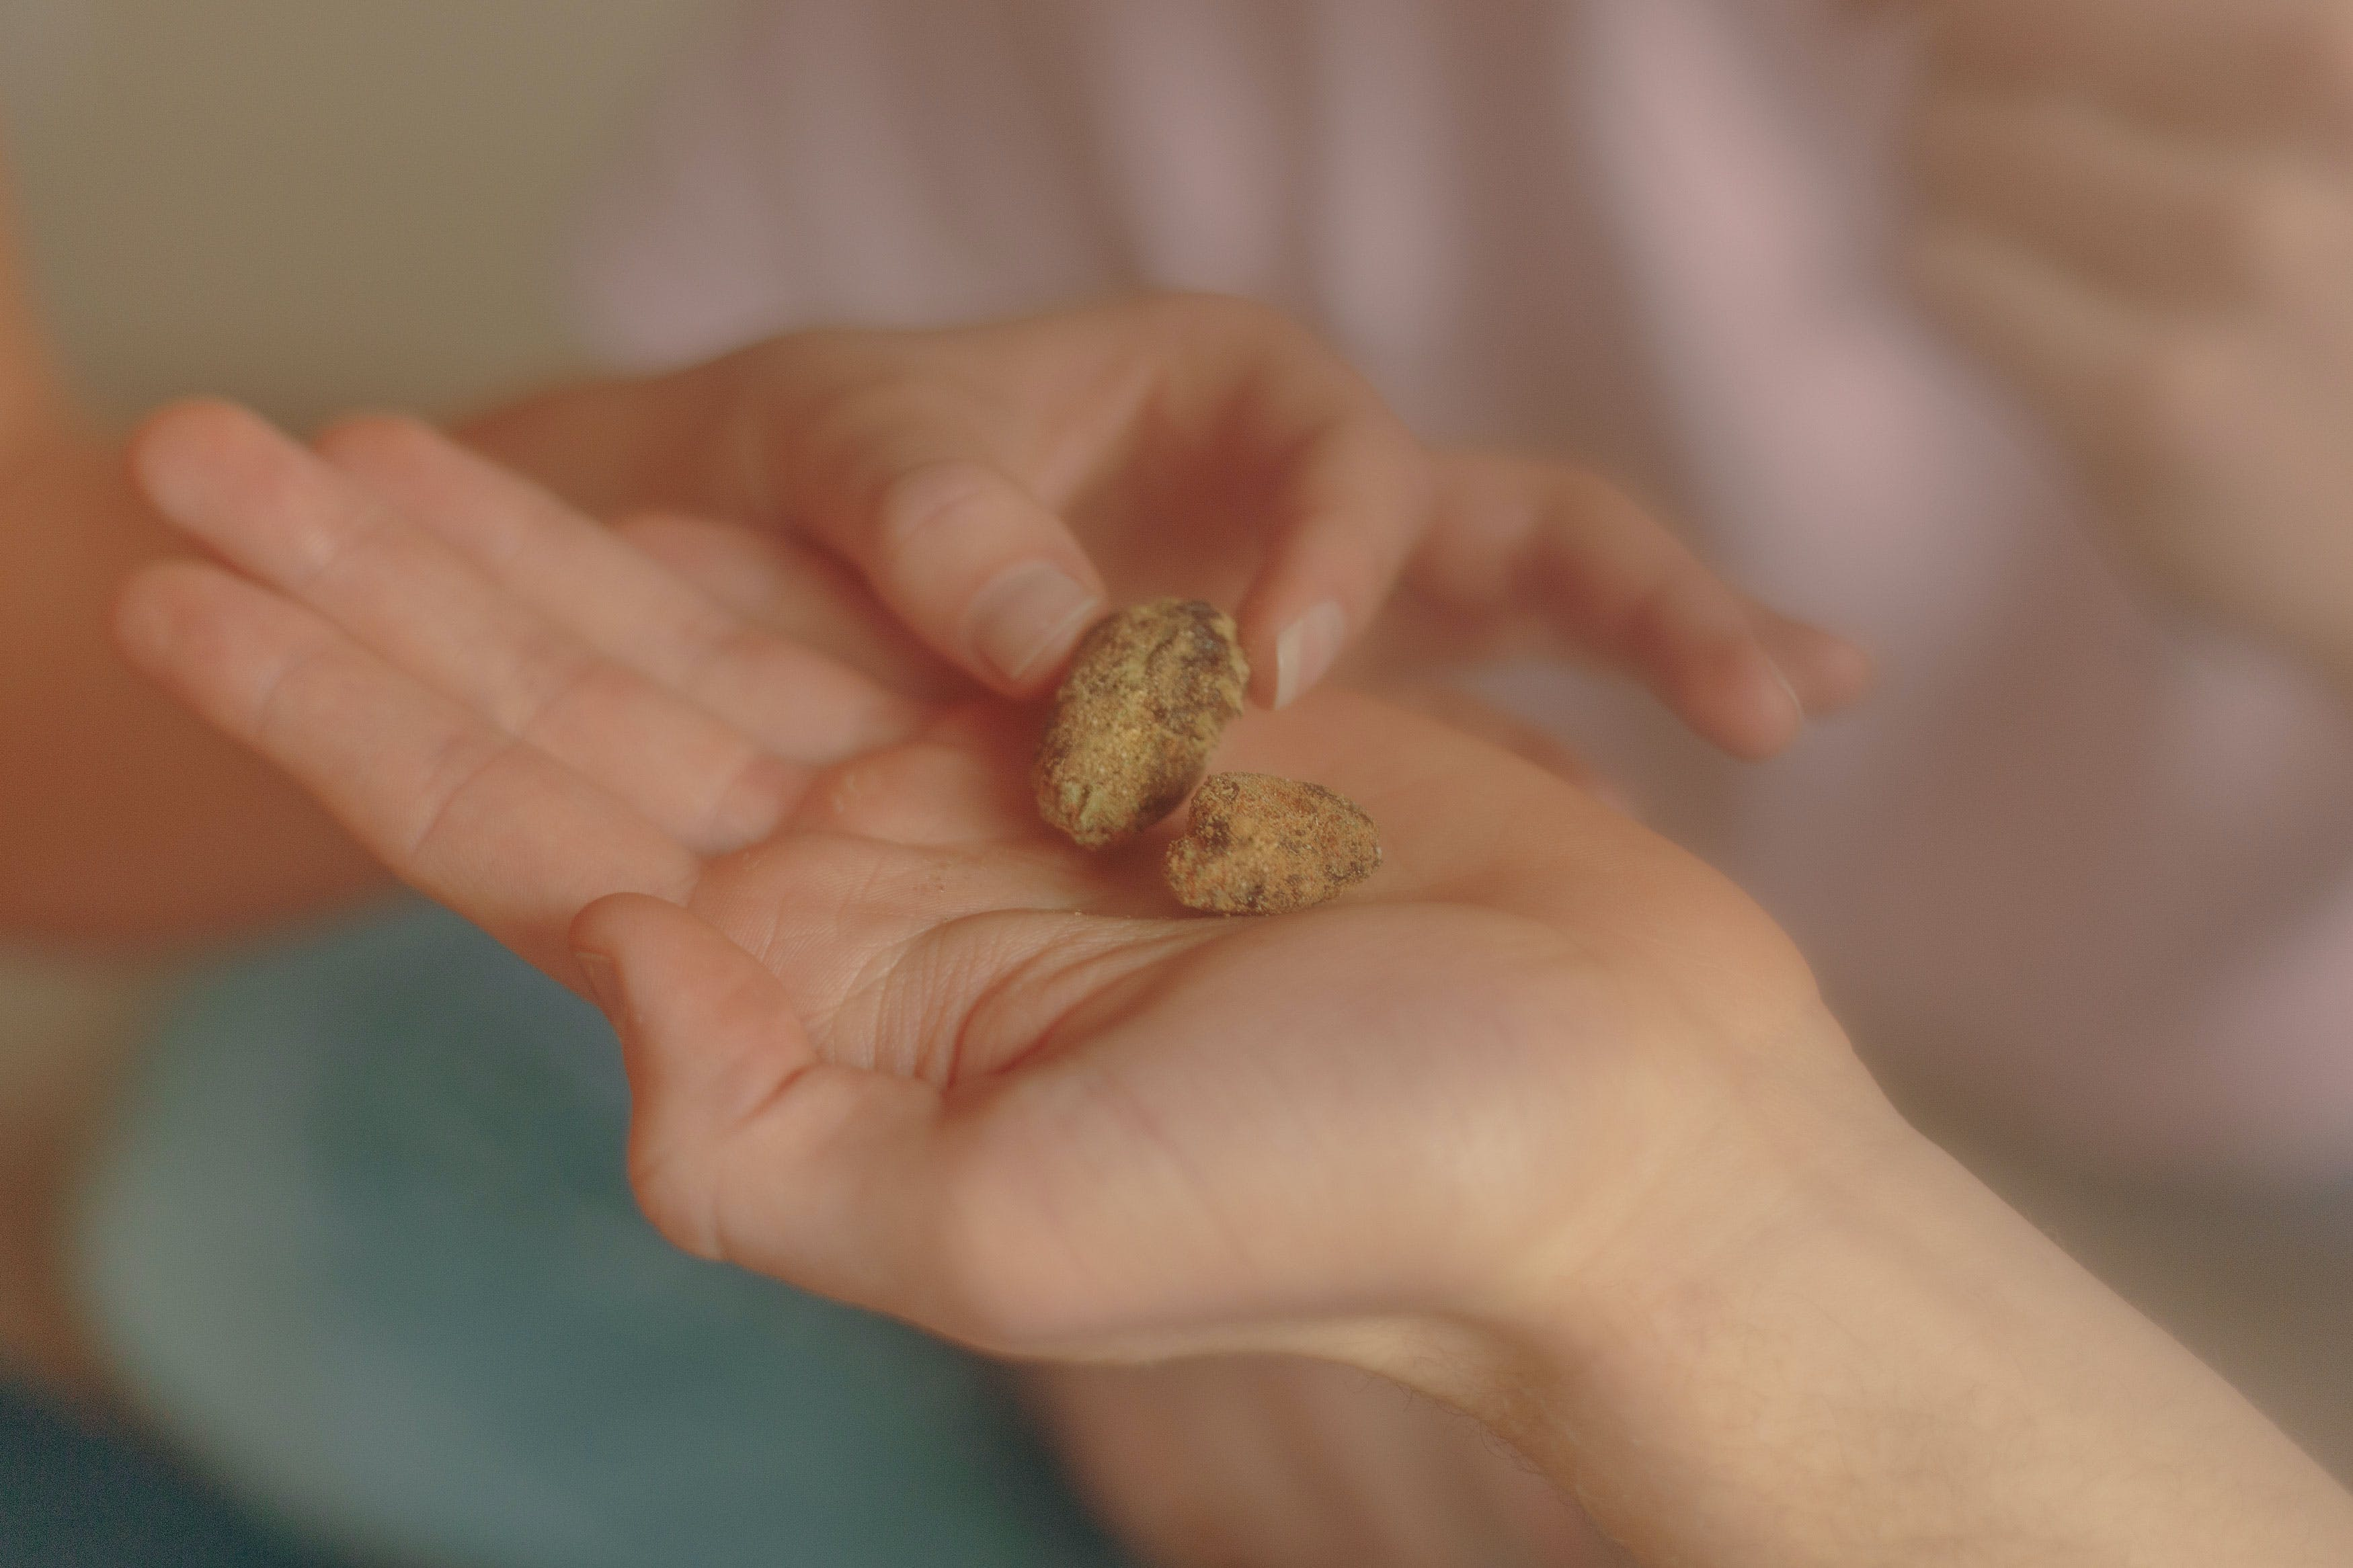 What are moon rocks: Moon rocks in a hand